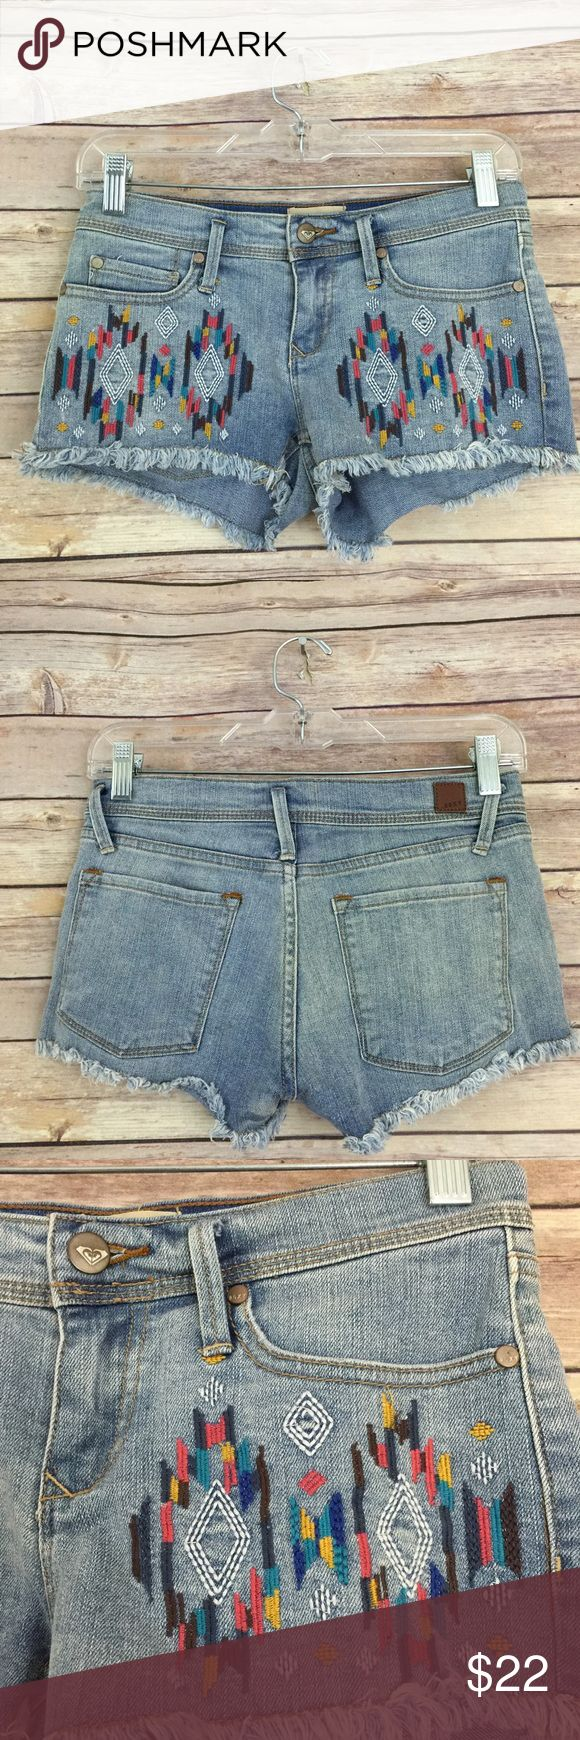 """Roxy denim festival embroidered shorts  0/24 #228 These Roxy embroidered denim shorts are perfect for the on trend embroidery detail!! They are a size 0/24 and measure 13.5"""" flat across the waist with a 2"""" inseam. They are in excellent condition with no known flaws.  Perfect for upcoming festivals!! Roxy Shorts Jean Shorts"""